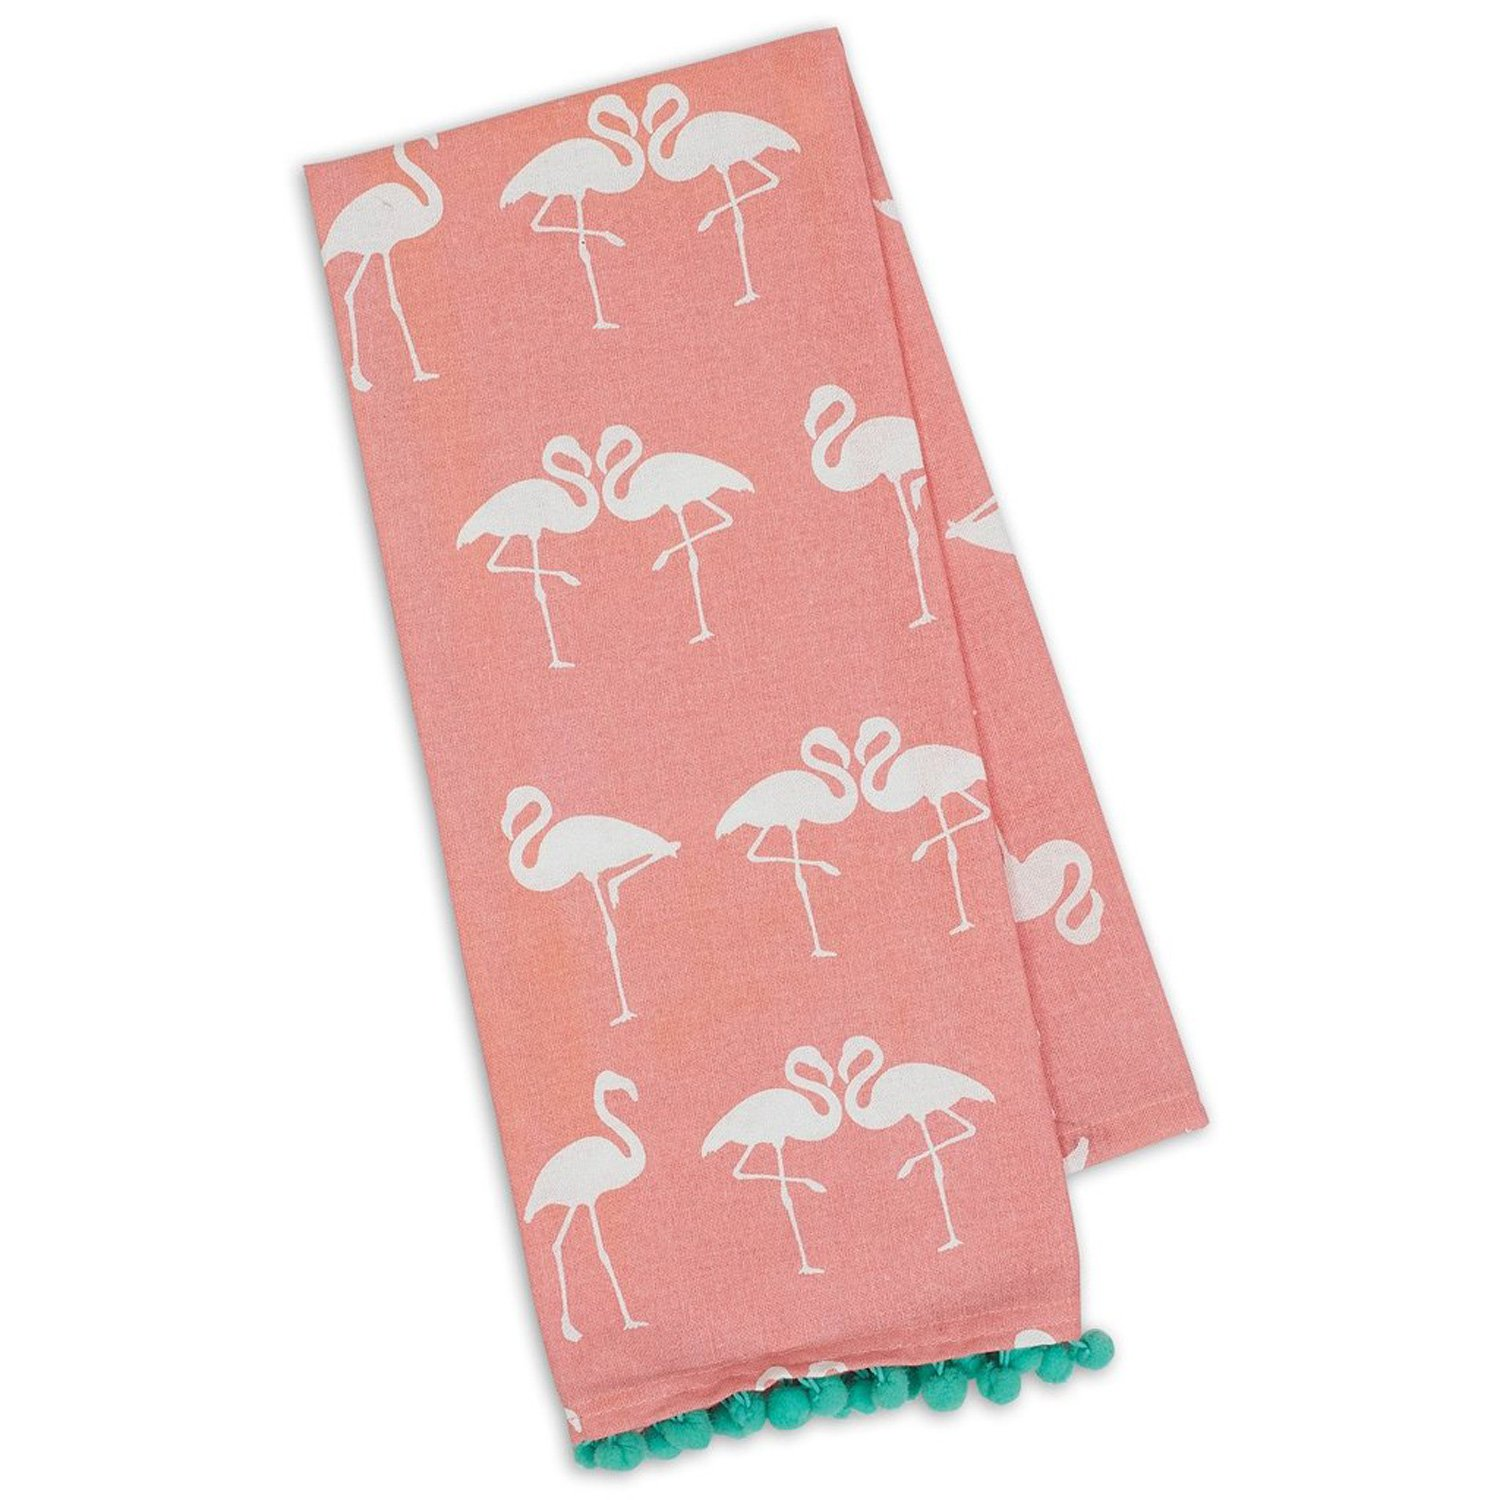 Design Imports Pineapple and Palms Table Linens, 18-Inch by 28-Inch Dishtowels, Set of 2, Flamingo Pom Pom Printed